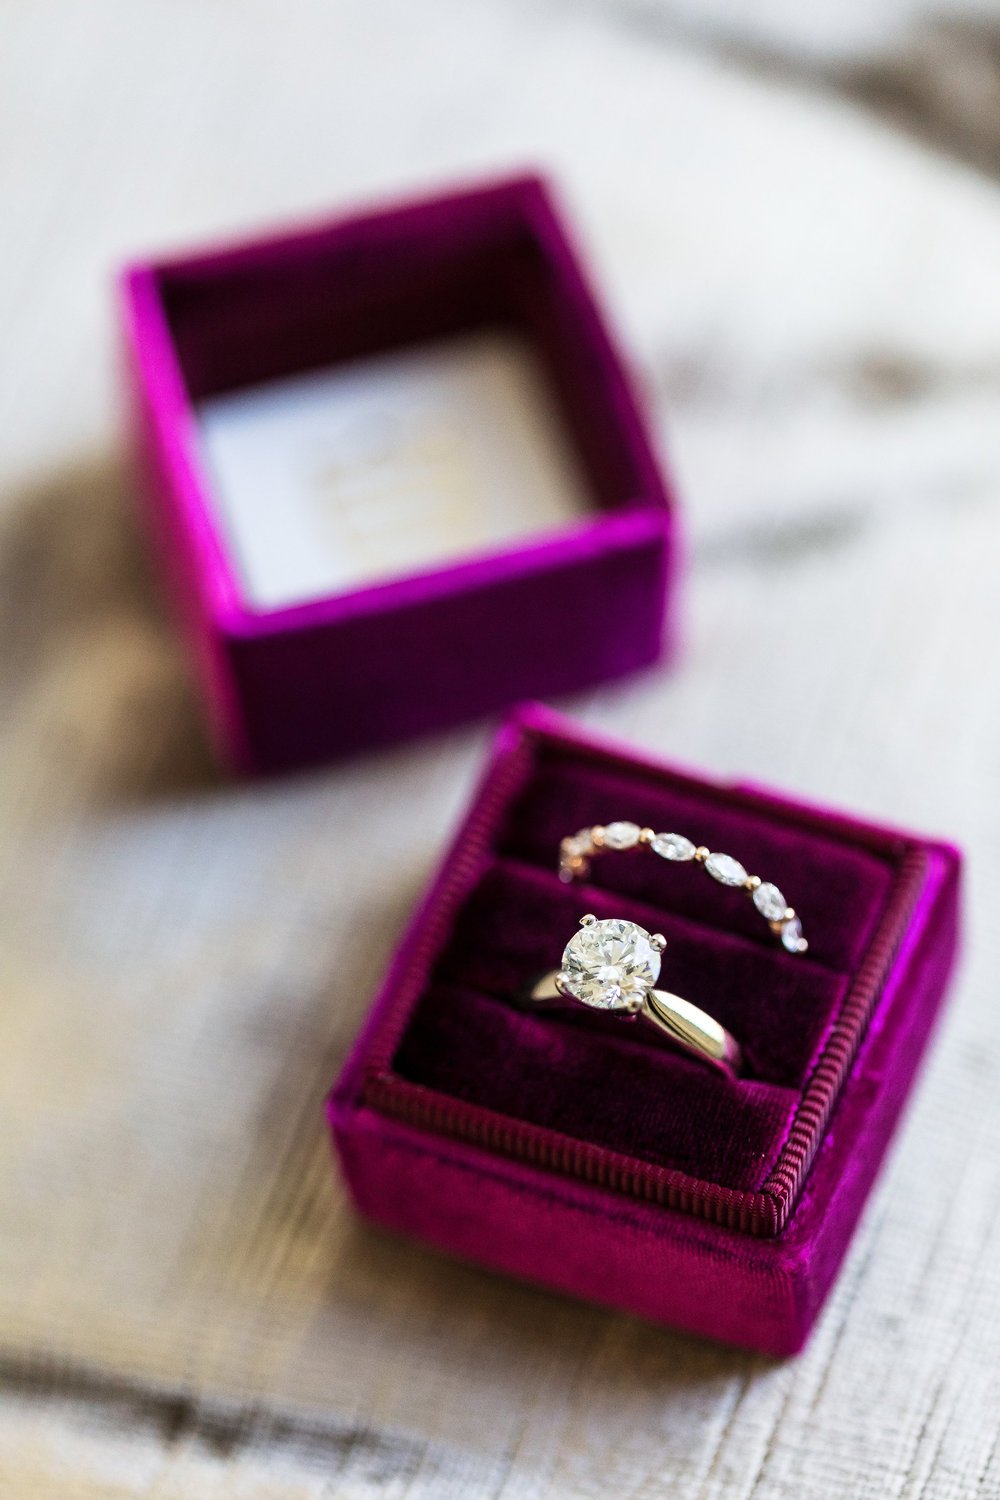 Engagement Ring in Magenta Ring Box. Wedding Planner:  Andrea Eppolito Events  |   Photography  Brian Leahy   |  Videography  HOO Films   |  Venue & Catering:  Mandarin Oriental  / Waldorf Astoria |  Floral & Decor:  Destinations by Design    |  Lighting:  LED Unplugged  |  Music:  DJ Breeze II   |  Hair & Make Up:  Amelia C & Co